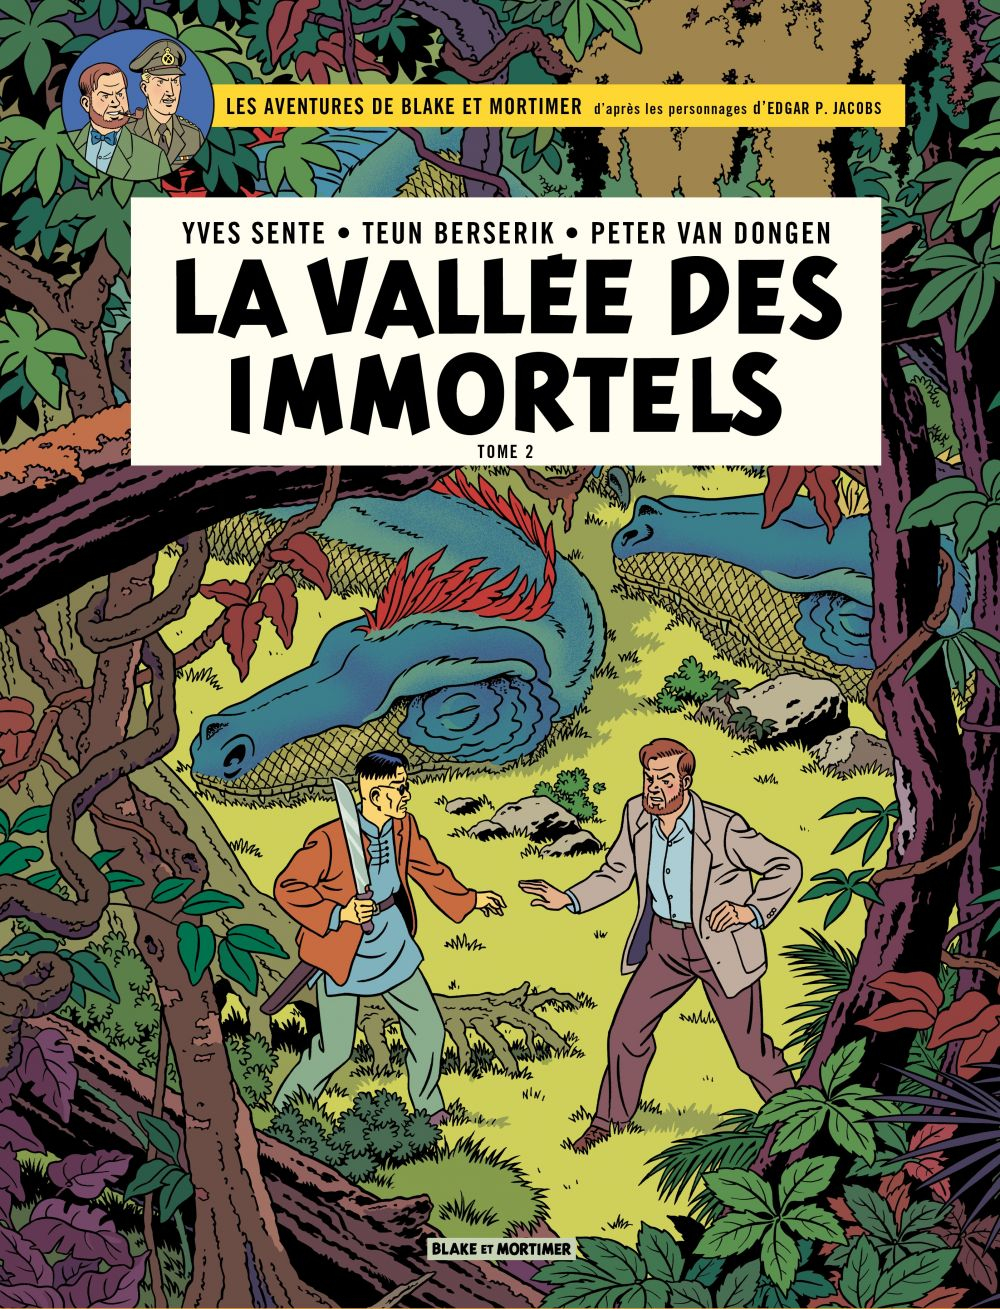 Blake & Mortimer - Volume 26 - La Vallée des immortels